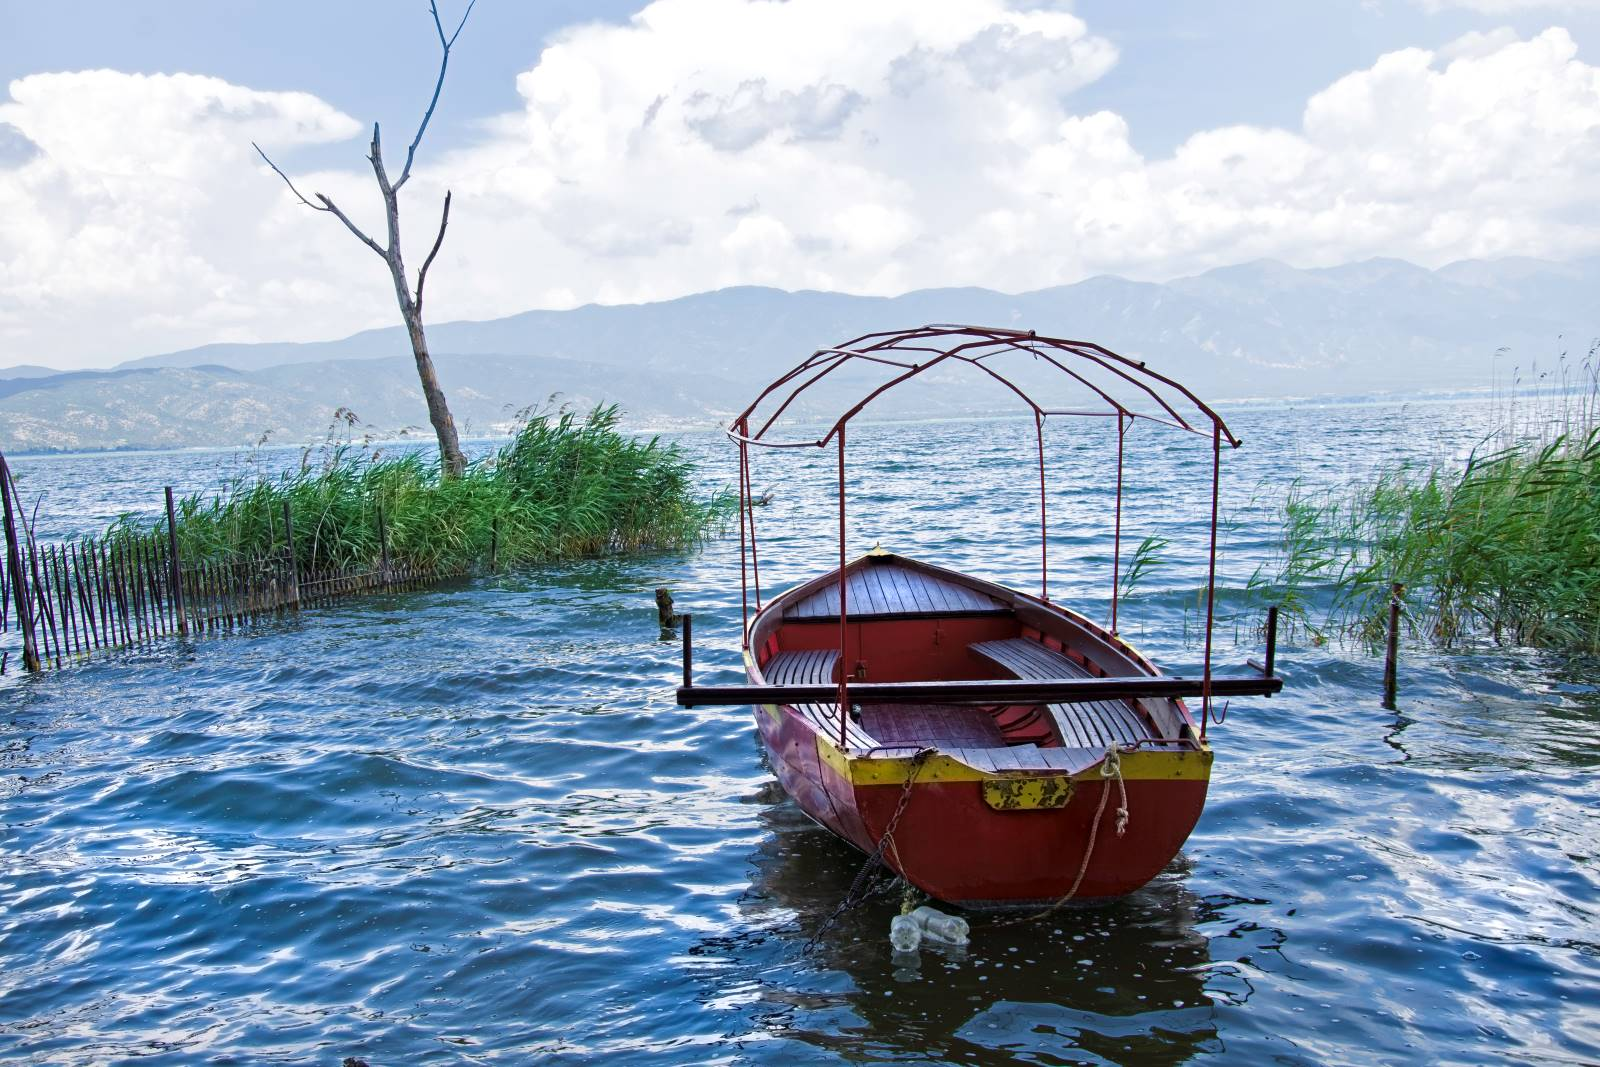 A boat in Dojran Lake